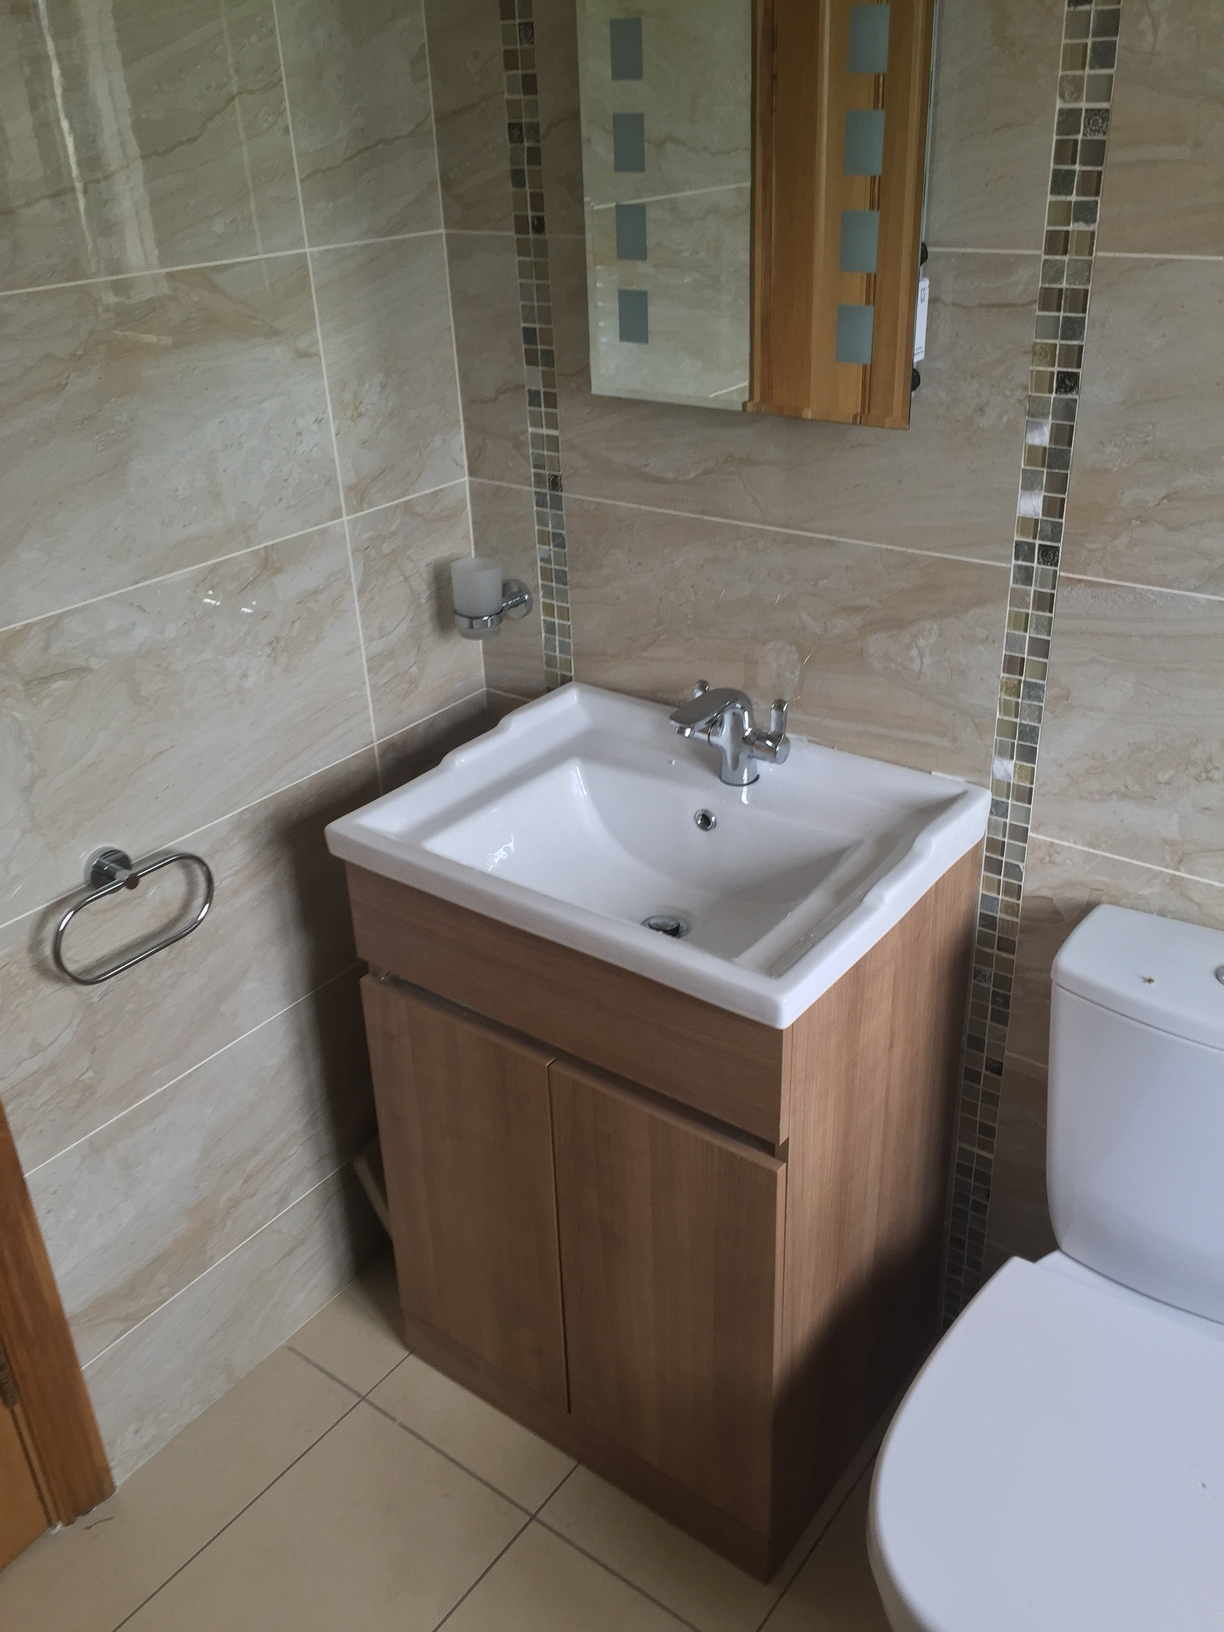 Bathroom Renovation Dublin view pictures and photos for gmg carpentry services glenn mcgowan